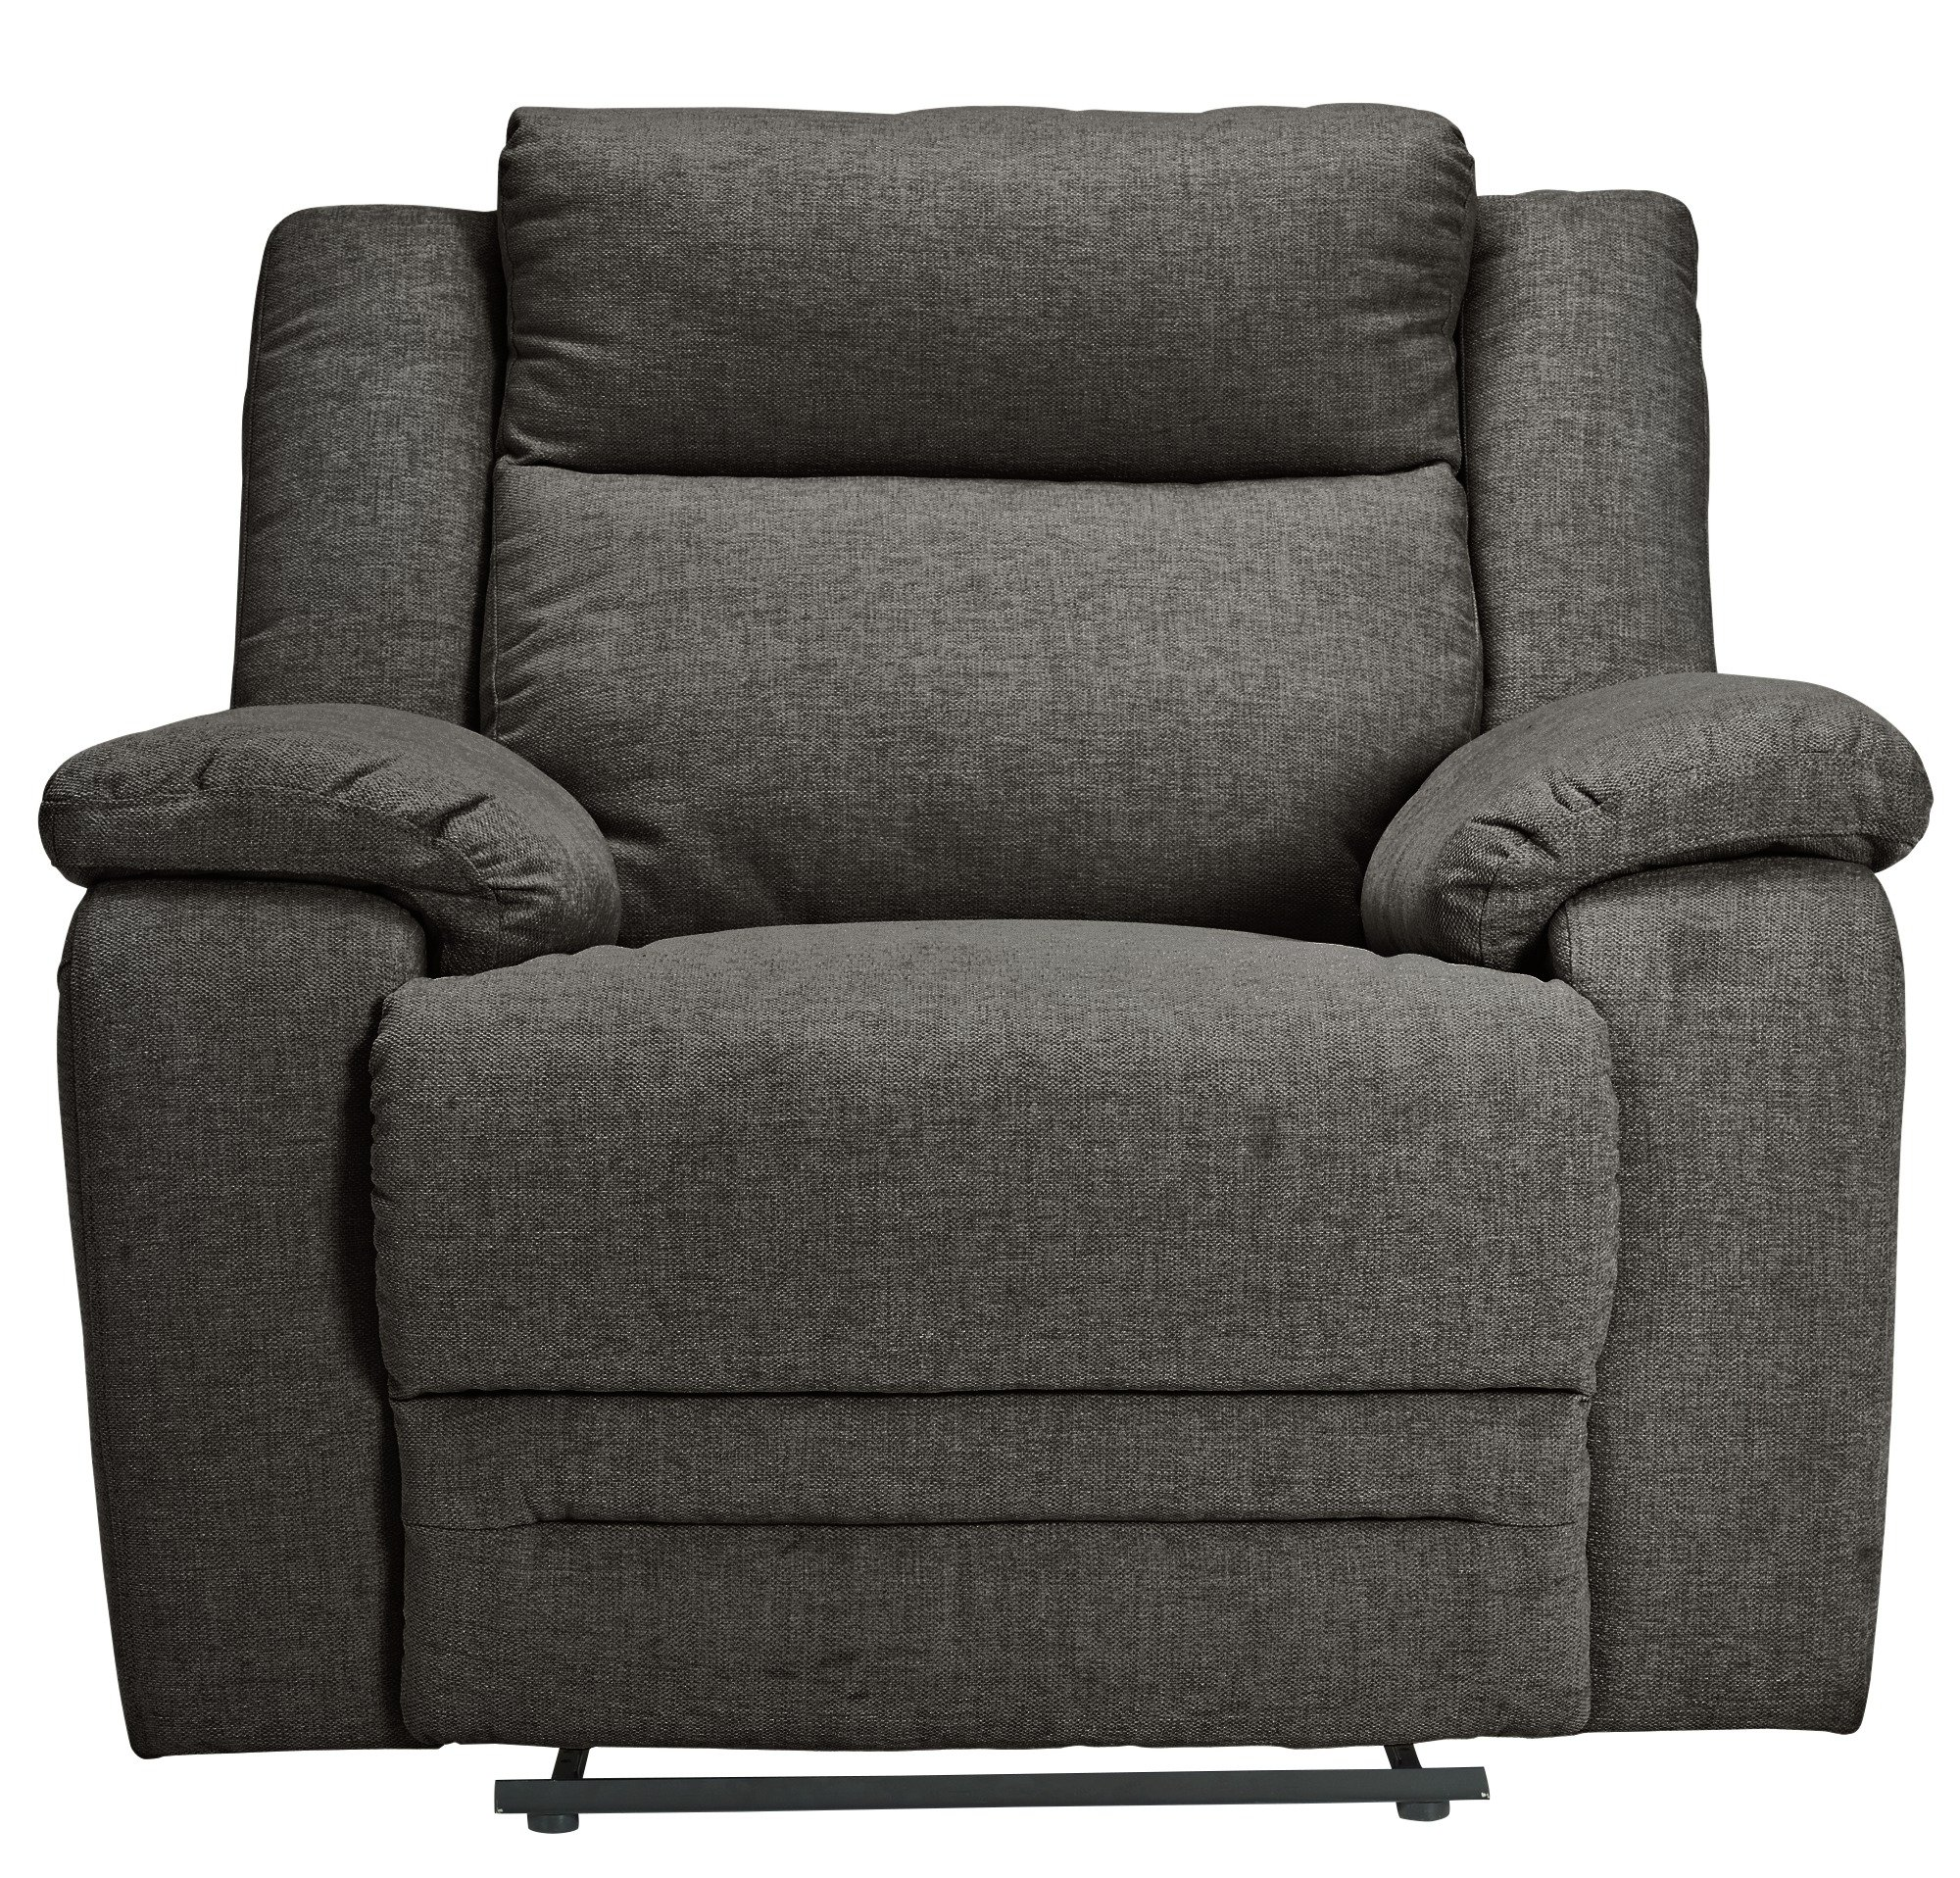 Argos Home Blake Fabric Manual Recliner Chair - Grey